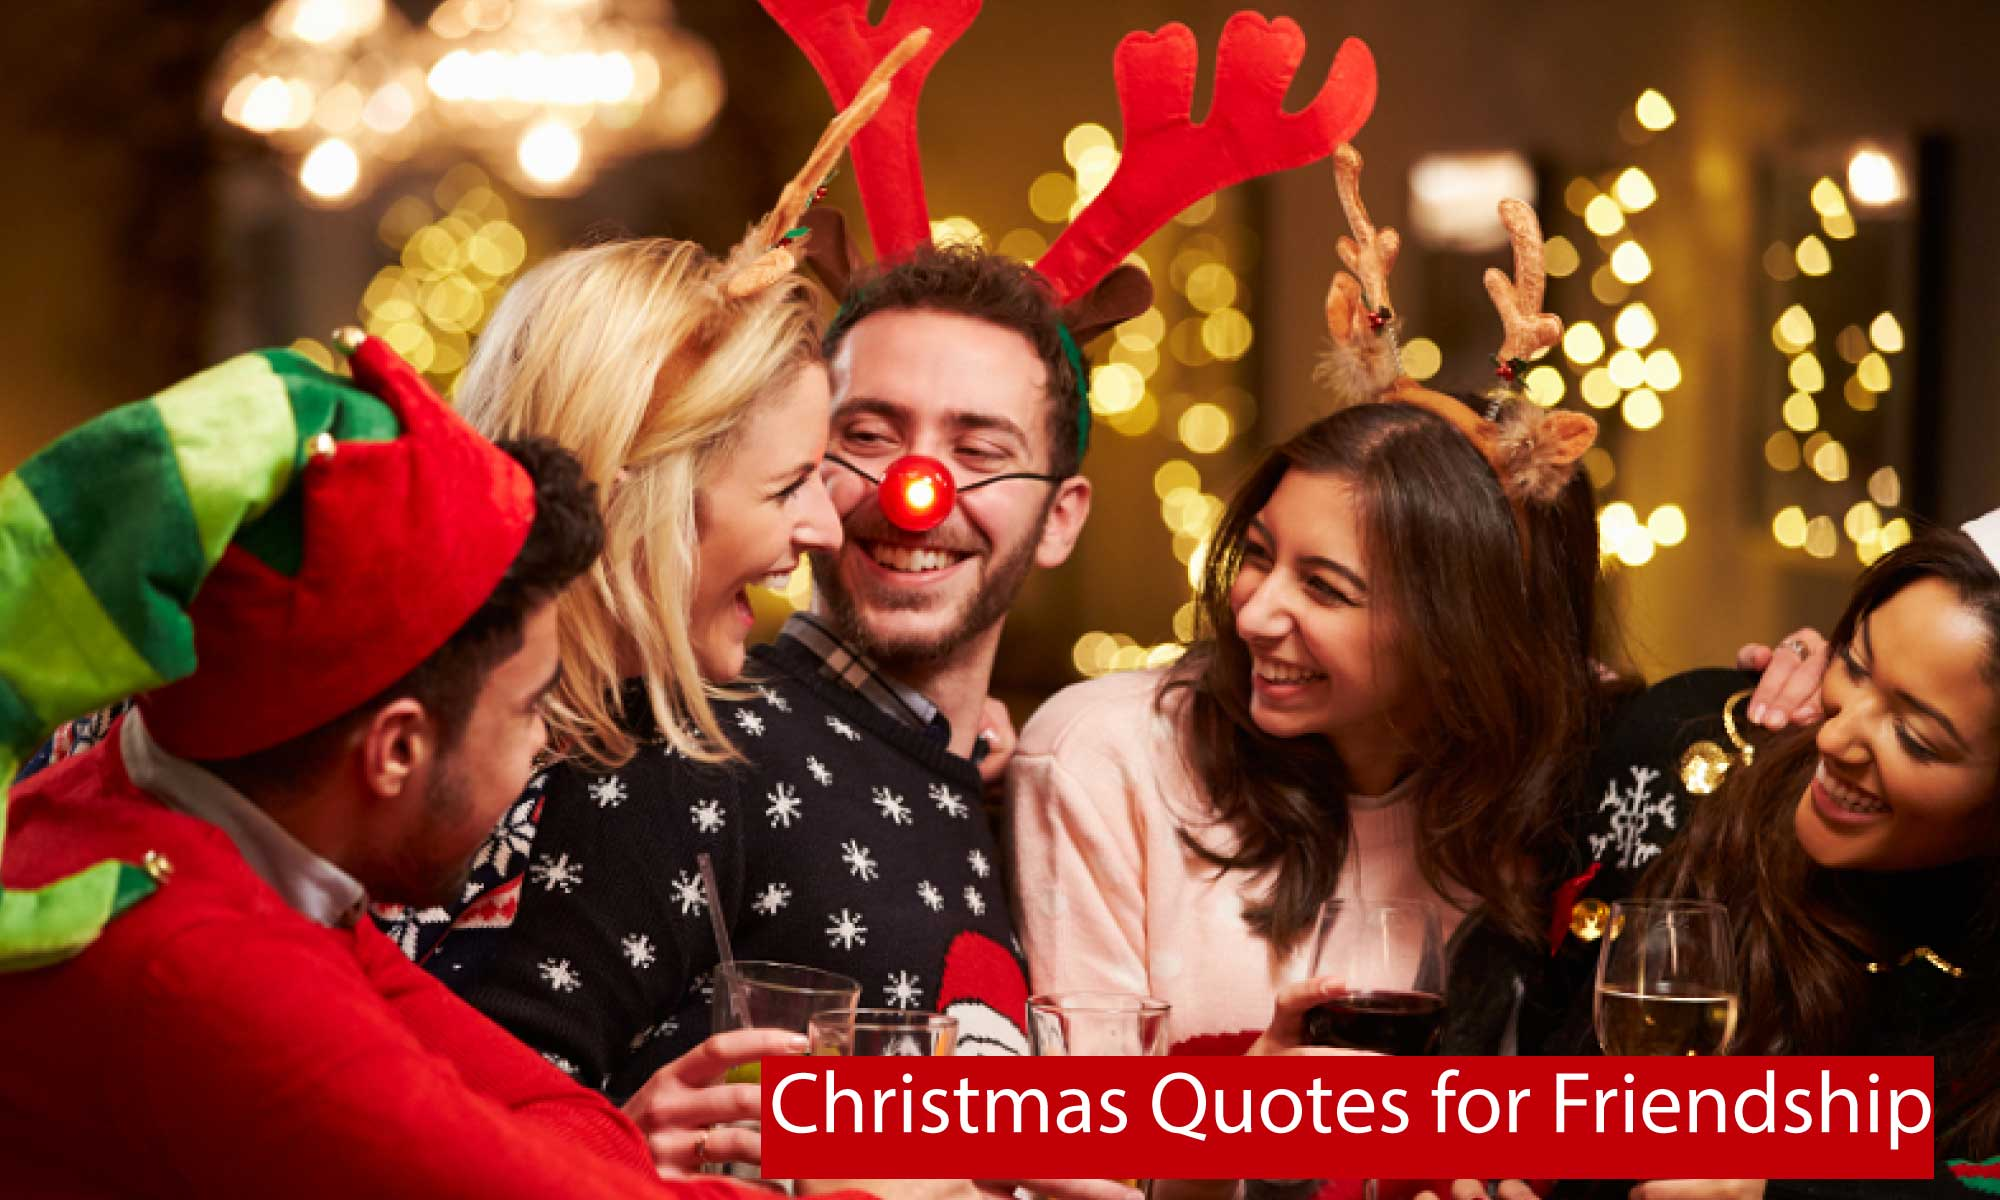 Christmas-quotes-for-friendship